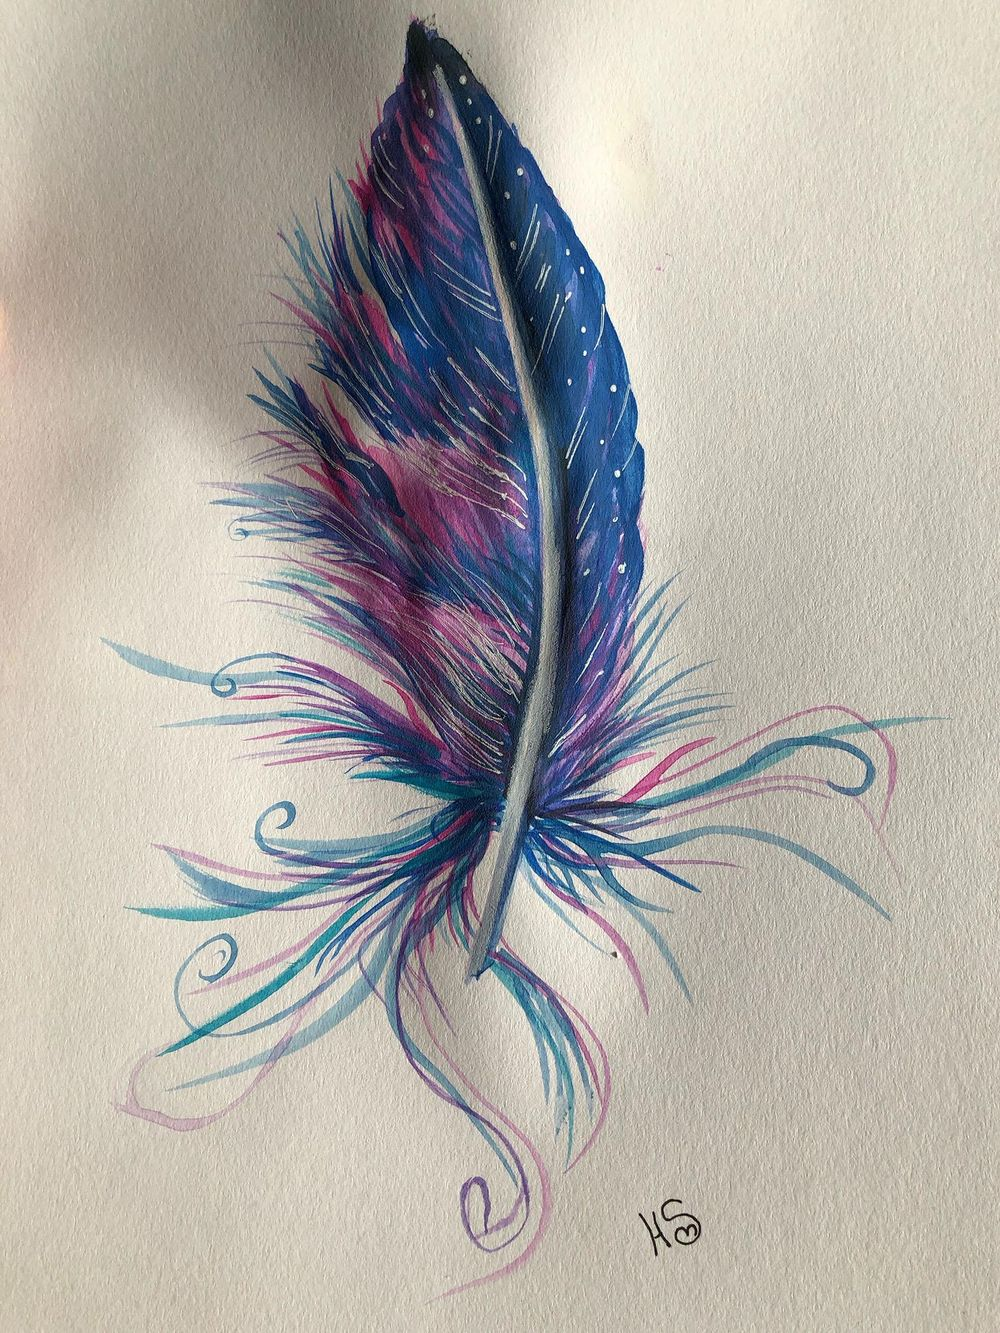 magic feather - image 1 - student project